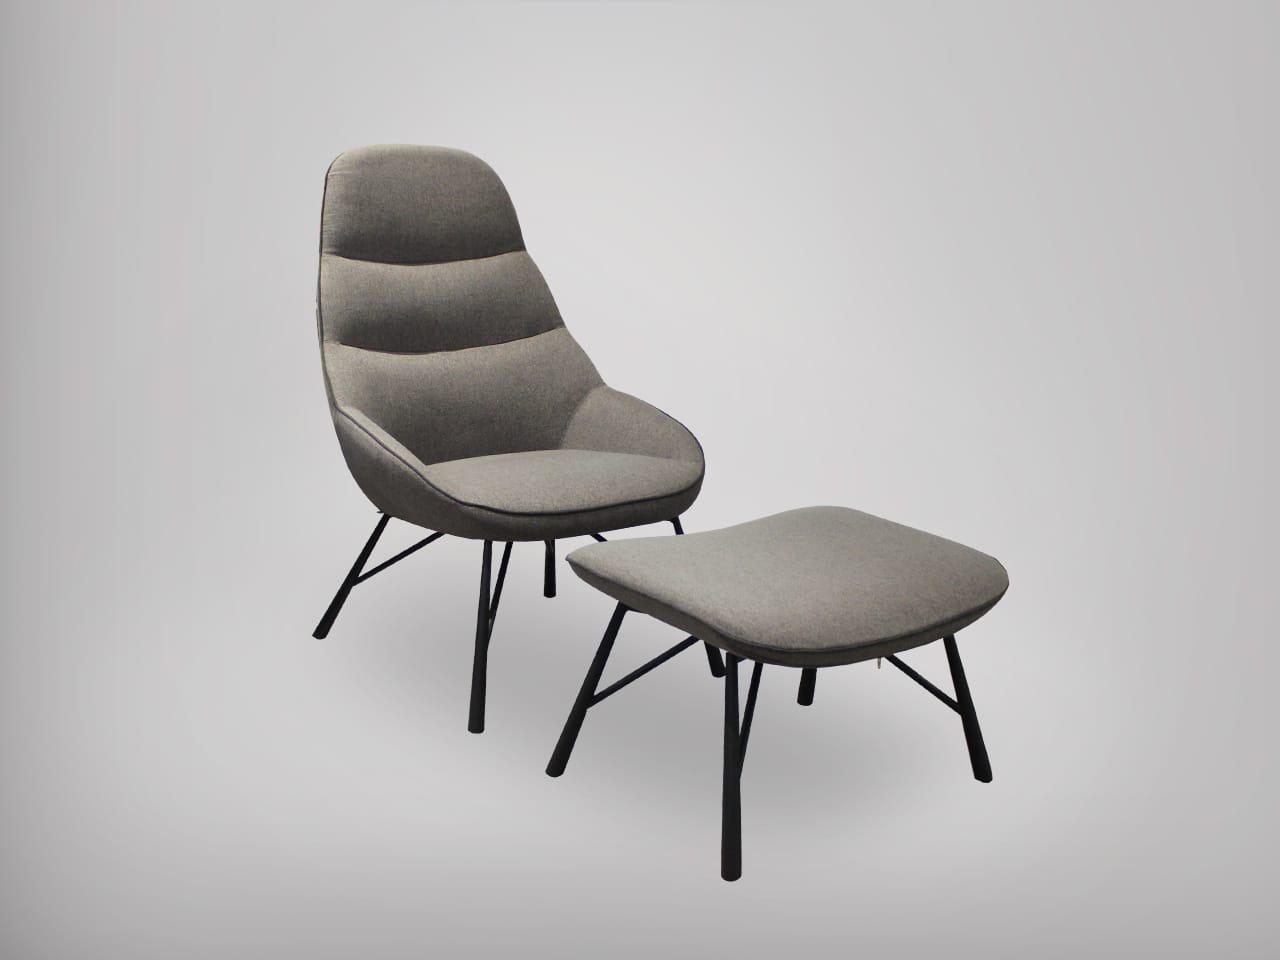 Worm Ottoman Comfort Design The Chair Amp Table People